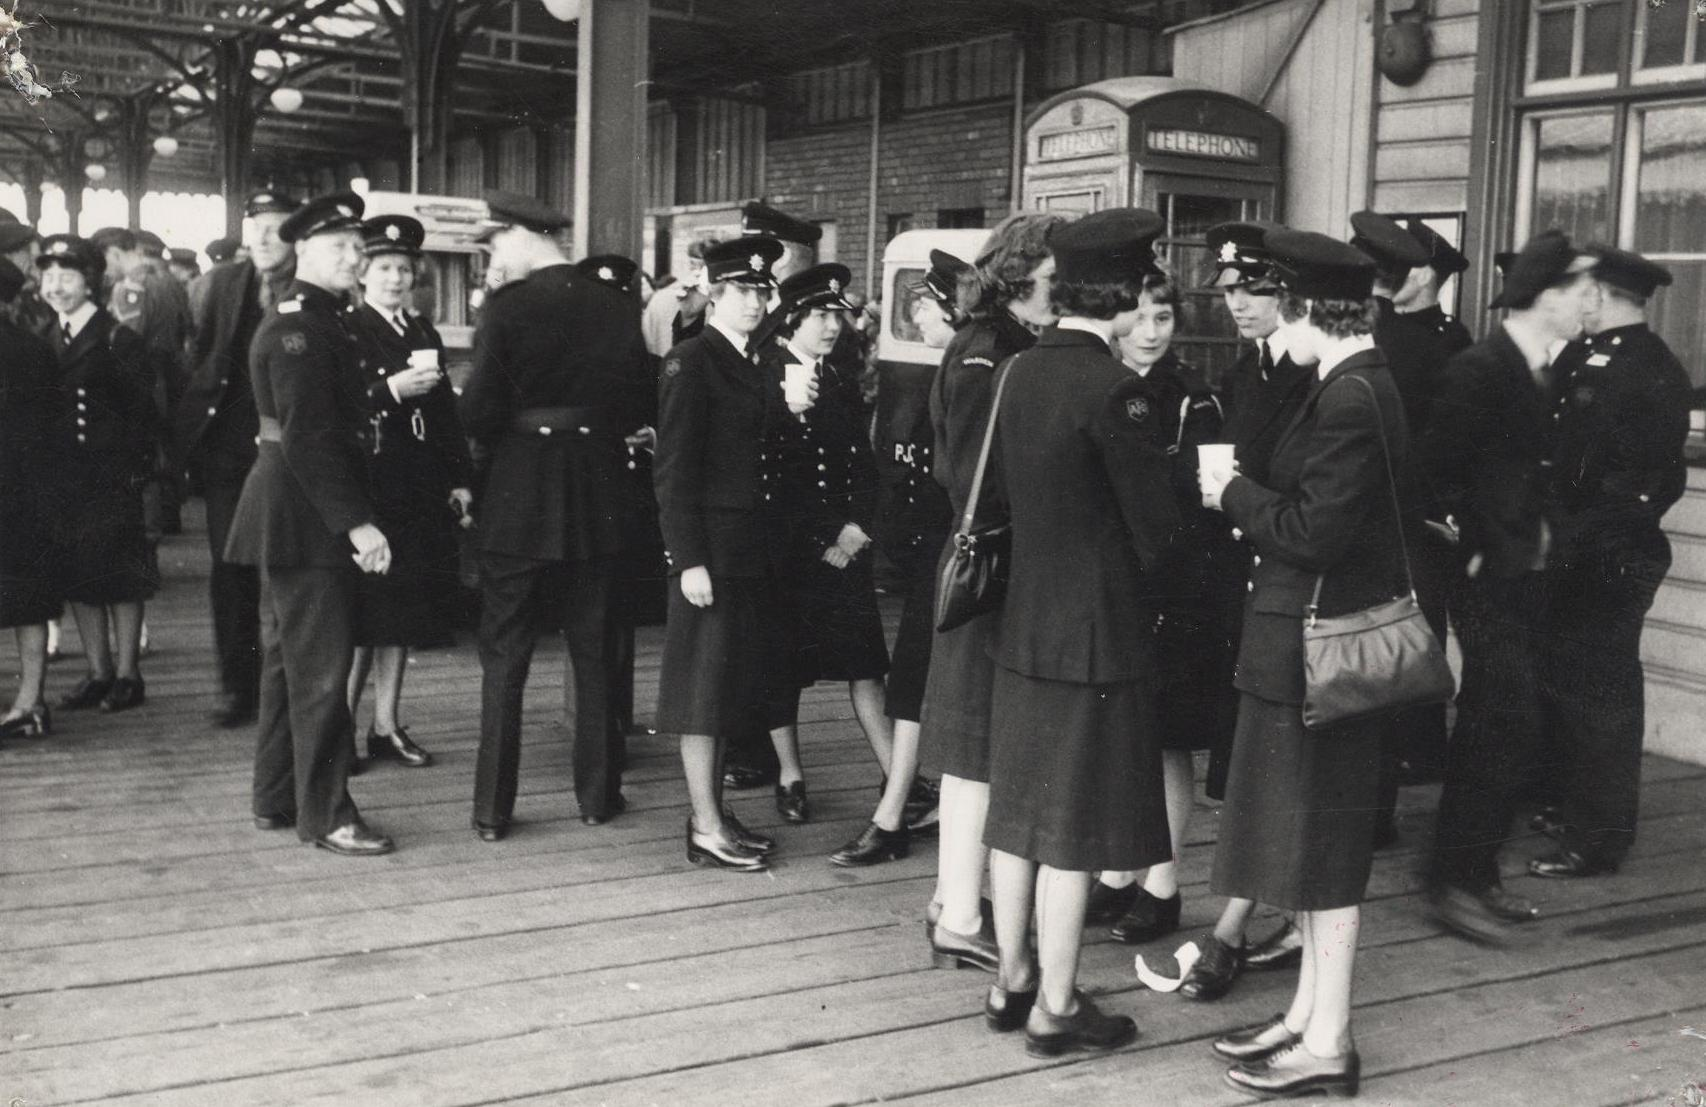 Emergency services personnel at the Humber ferry dock 28 May 1961(archive ref CD-103) (28)